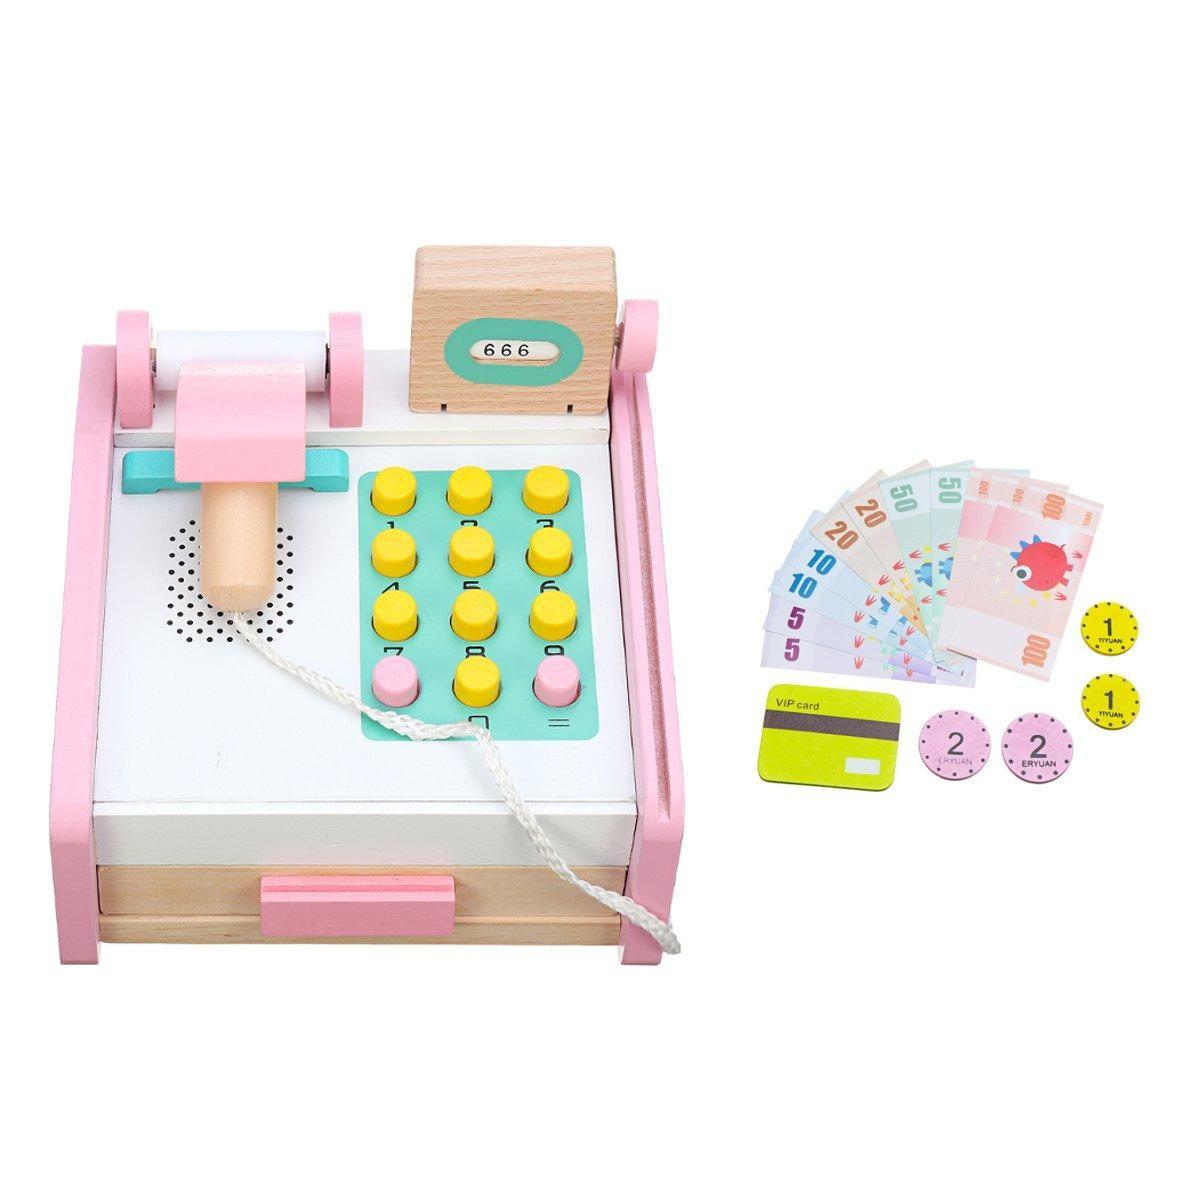 Supermarket Wooden Till Cash Register Toys Set Kids Educational Pretend Play Game